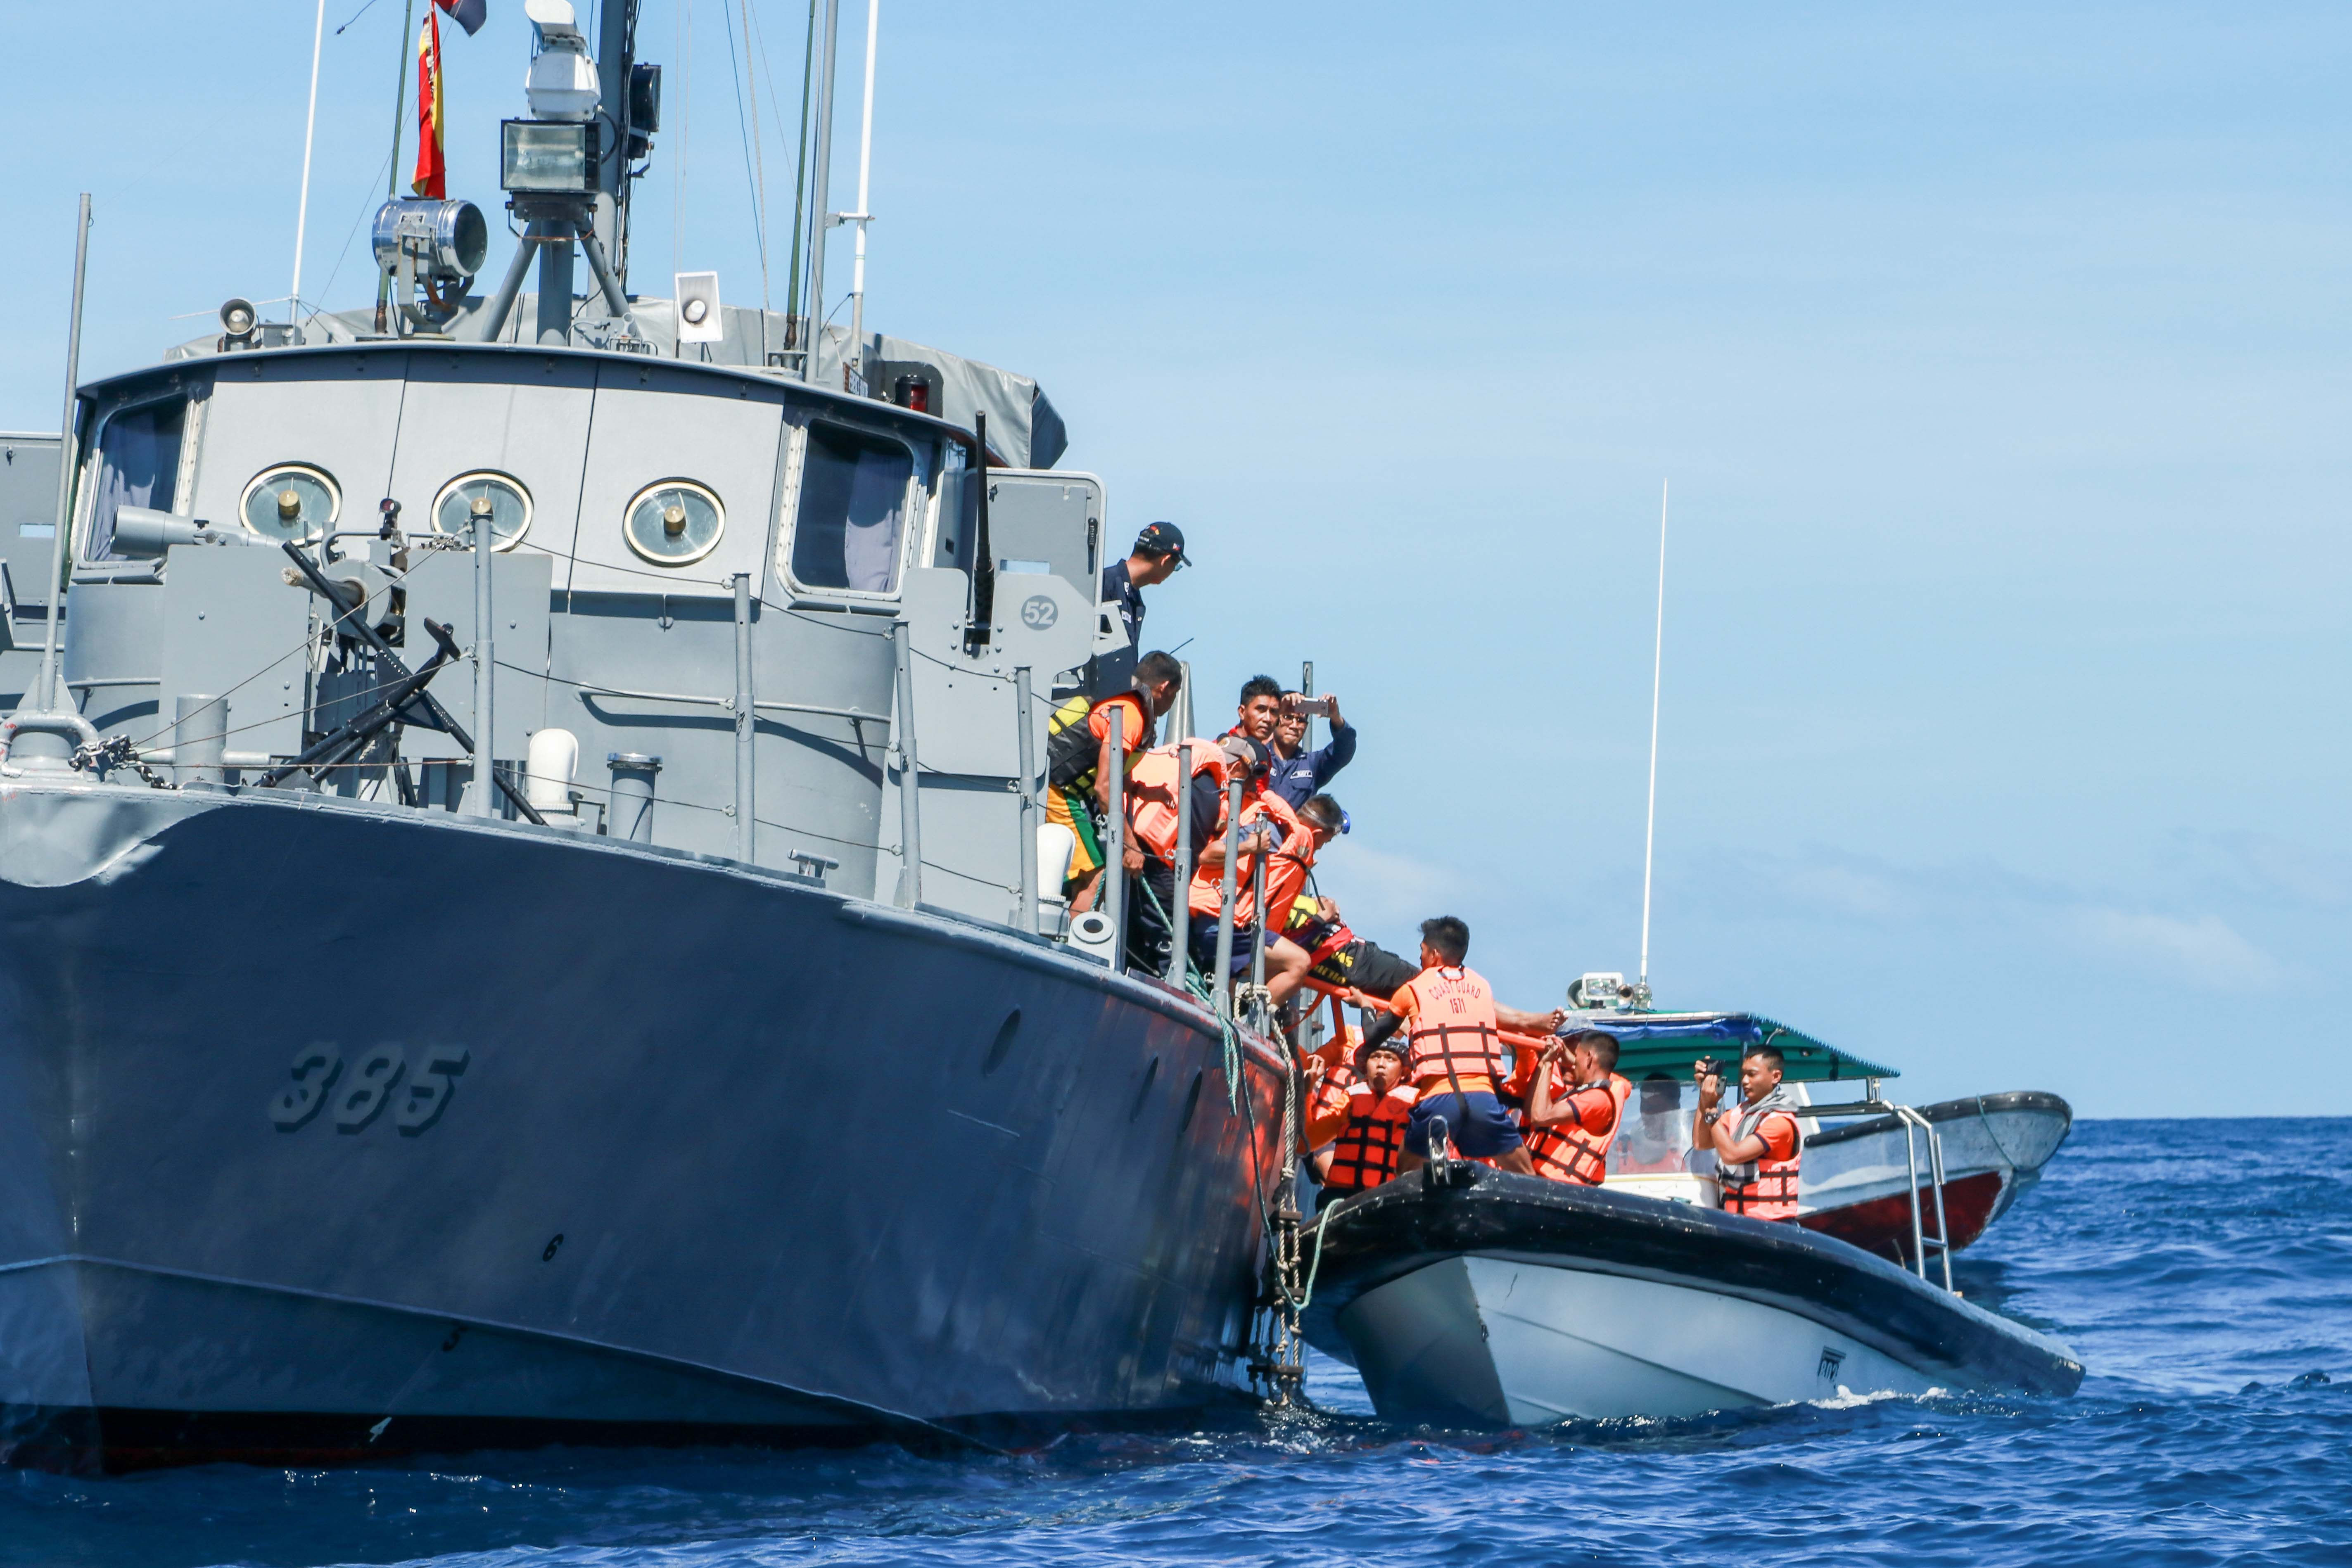 In the first scenario, volunteers aboard a speedboat of Ten Knots transfer a 'victim' to a navy vessel